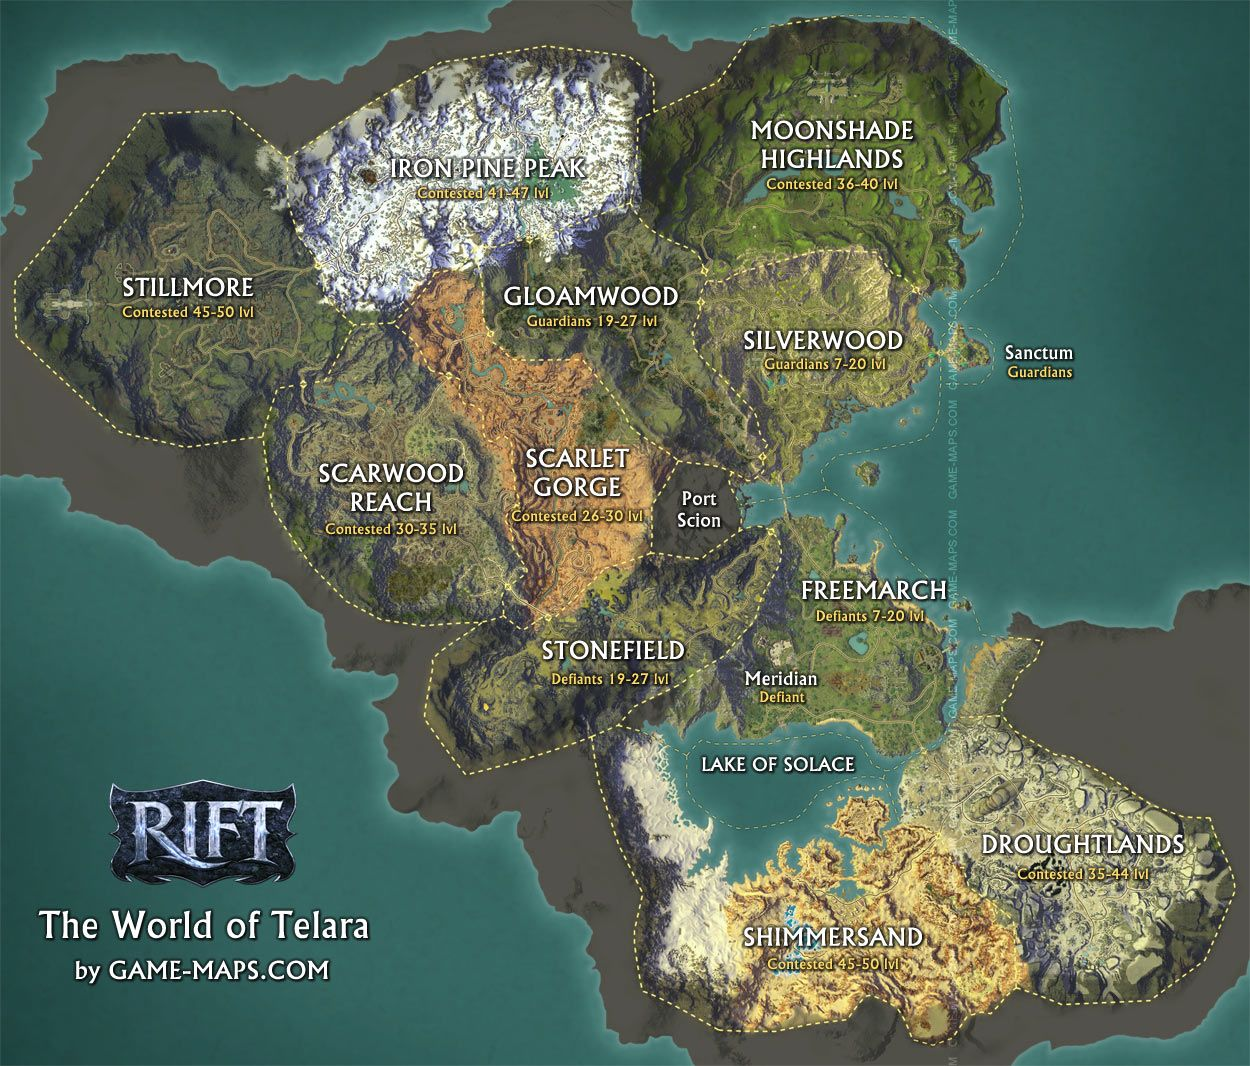 Rift the world of telara map by game maps fantasy maps rift the world of telara map by game maps gumiabroncs Images